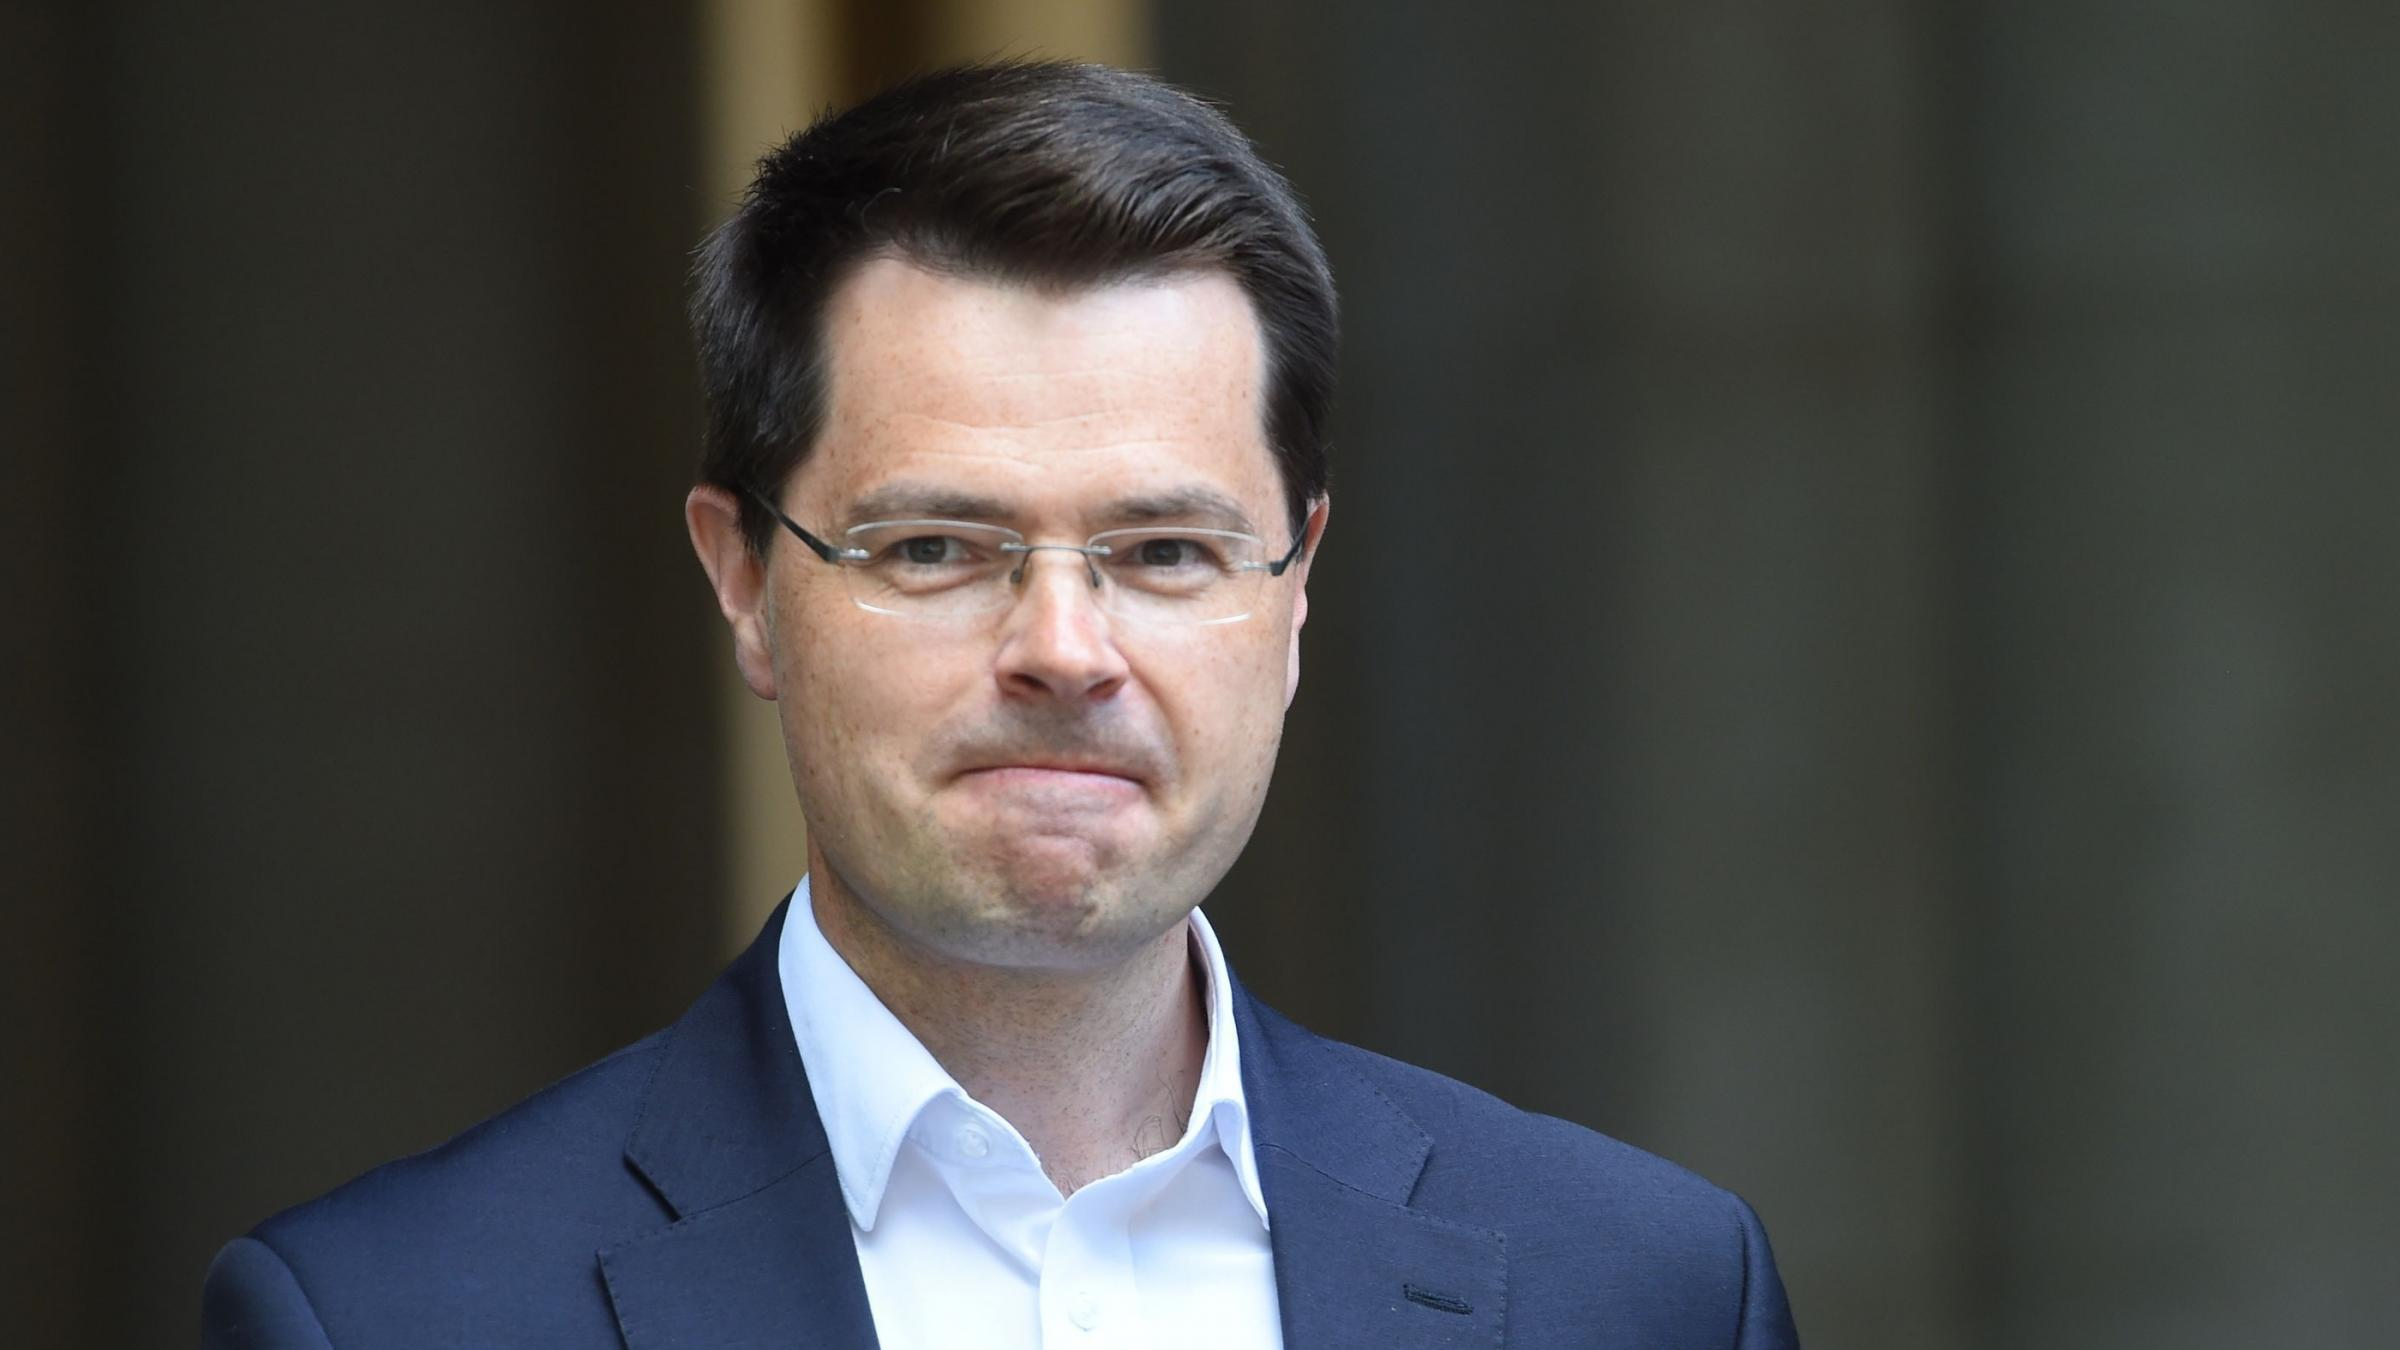 James Brokenshire not acceptable chairman for Stormont talks says Gerry Adams